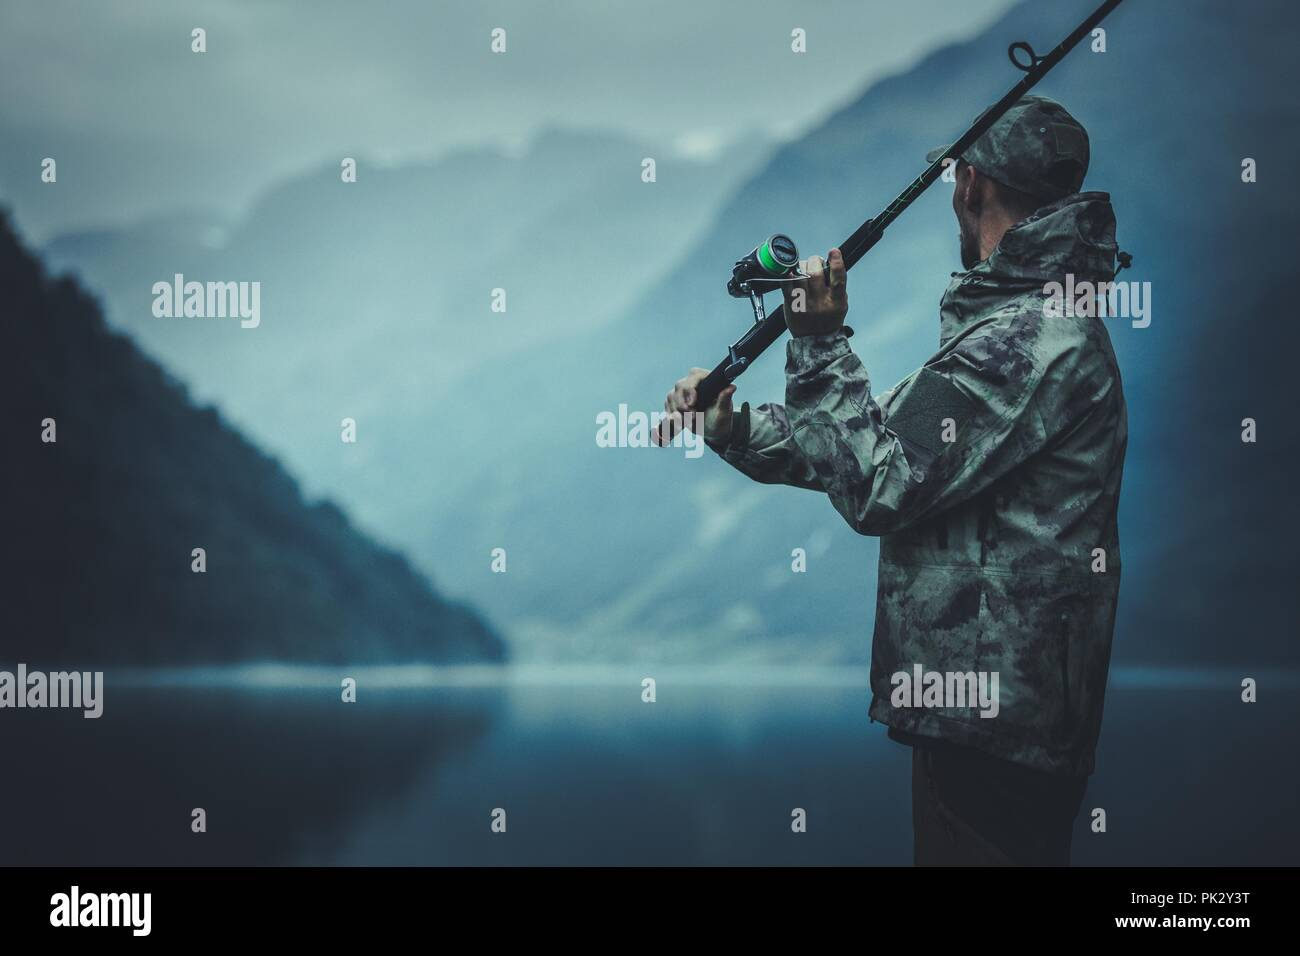 Evening Fly Fishing Time. Caucasian Fisherman with Fishing Rod on the Glacial Lake Shore. - Stock Image